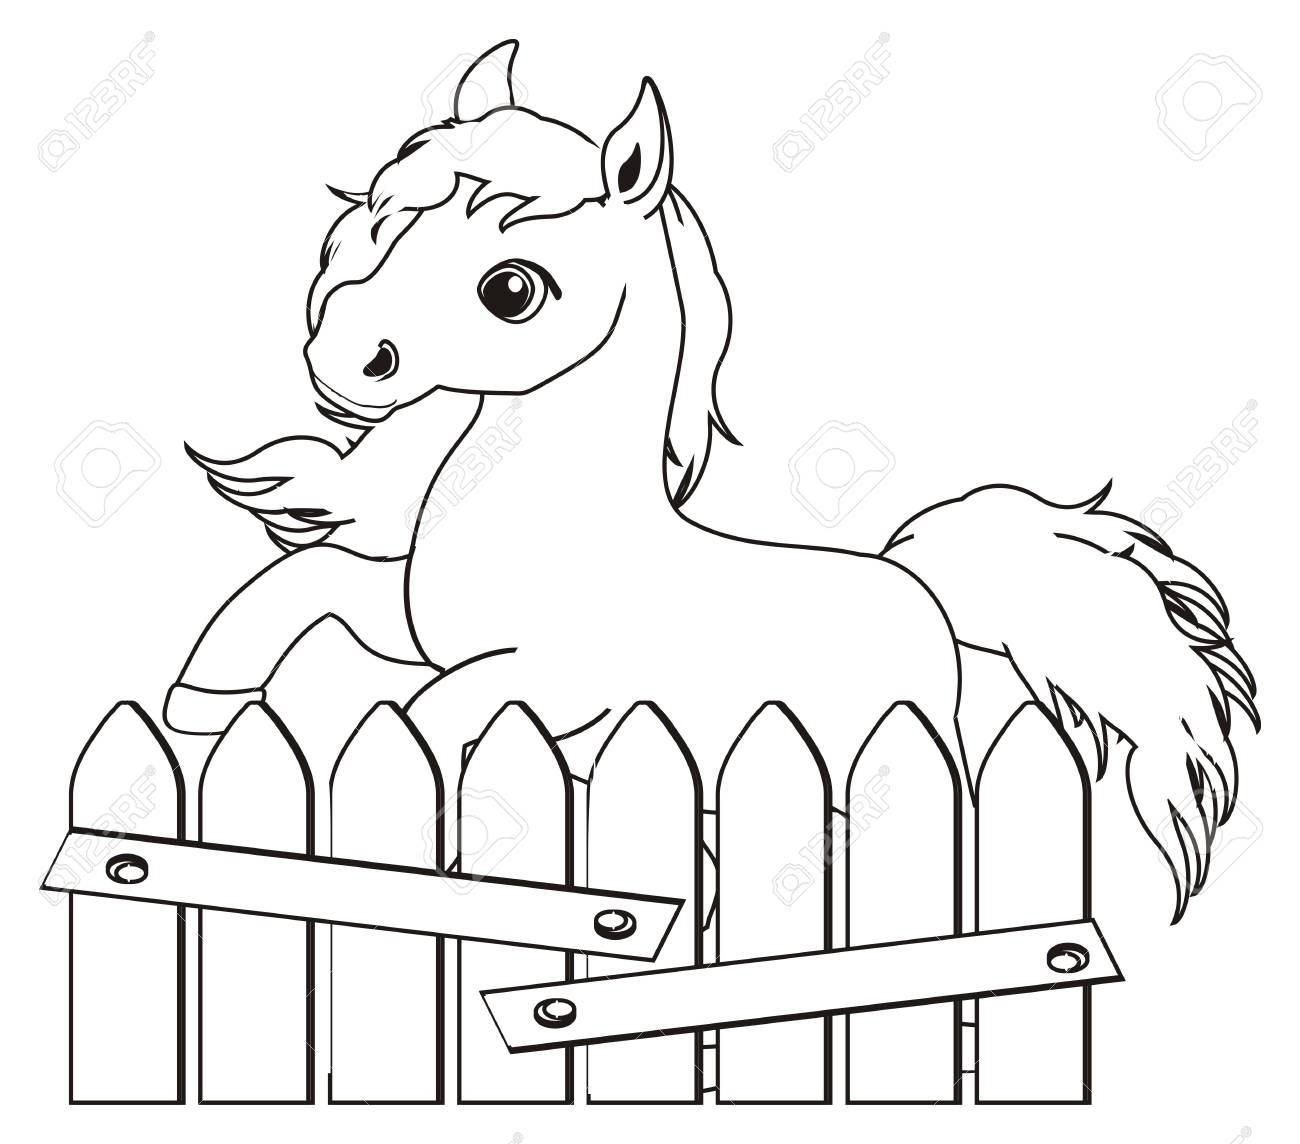 Coloring Horse Peek Up From Fence Stock Photo, Picture And Royalty ...